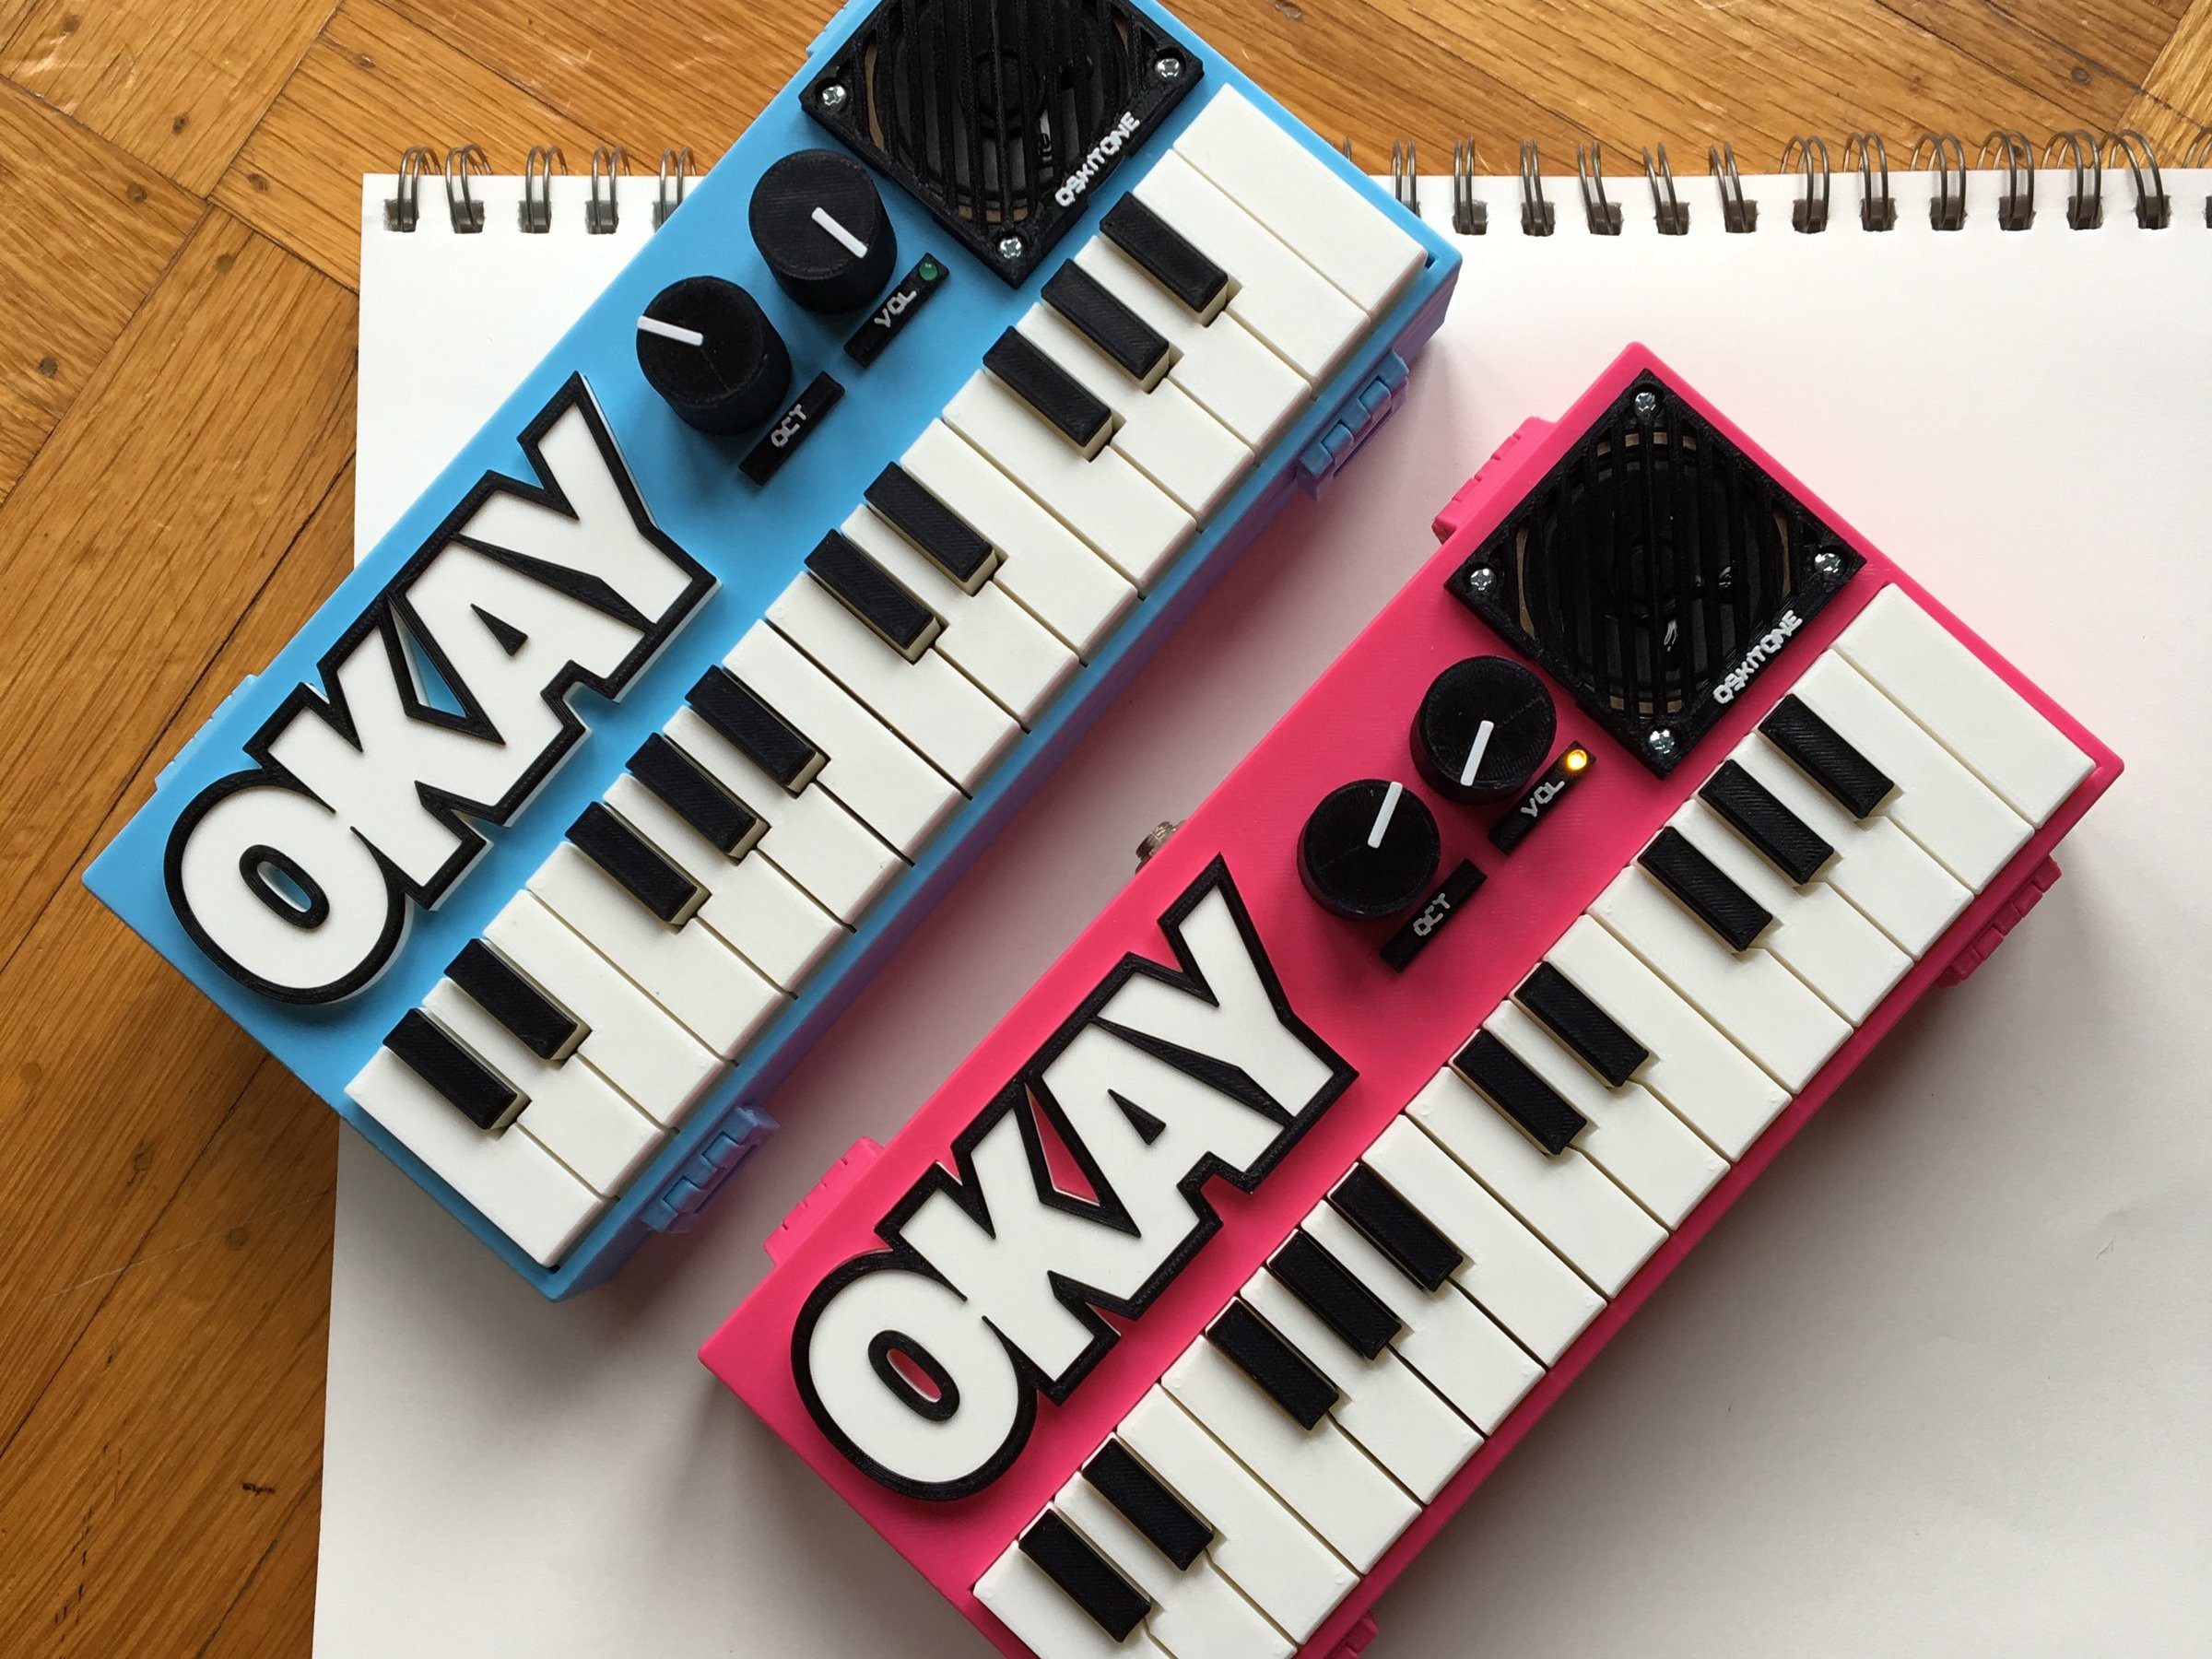 Best ideas about DIY Synth Kit . Save or Pin 2 Synth DIY Kit from Oskitone on Tin Now.